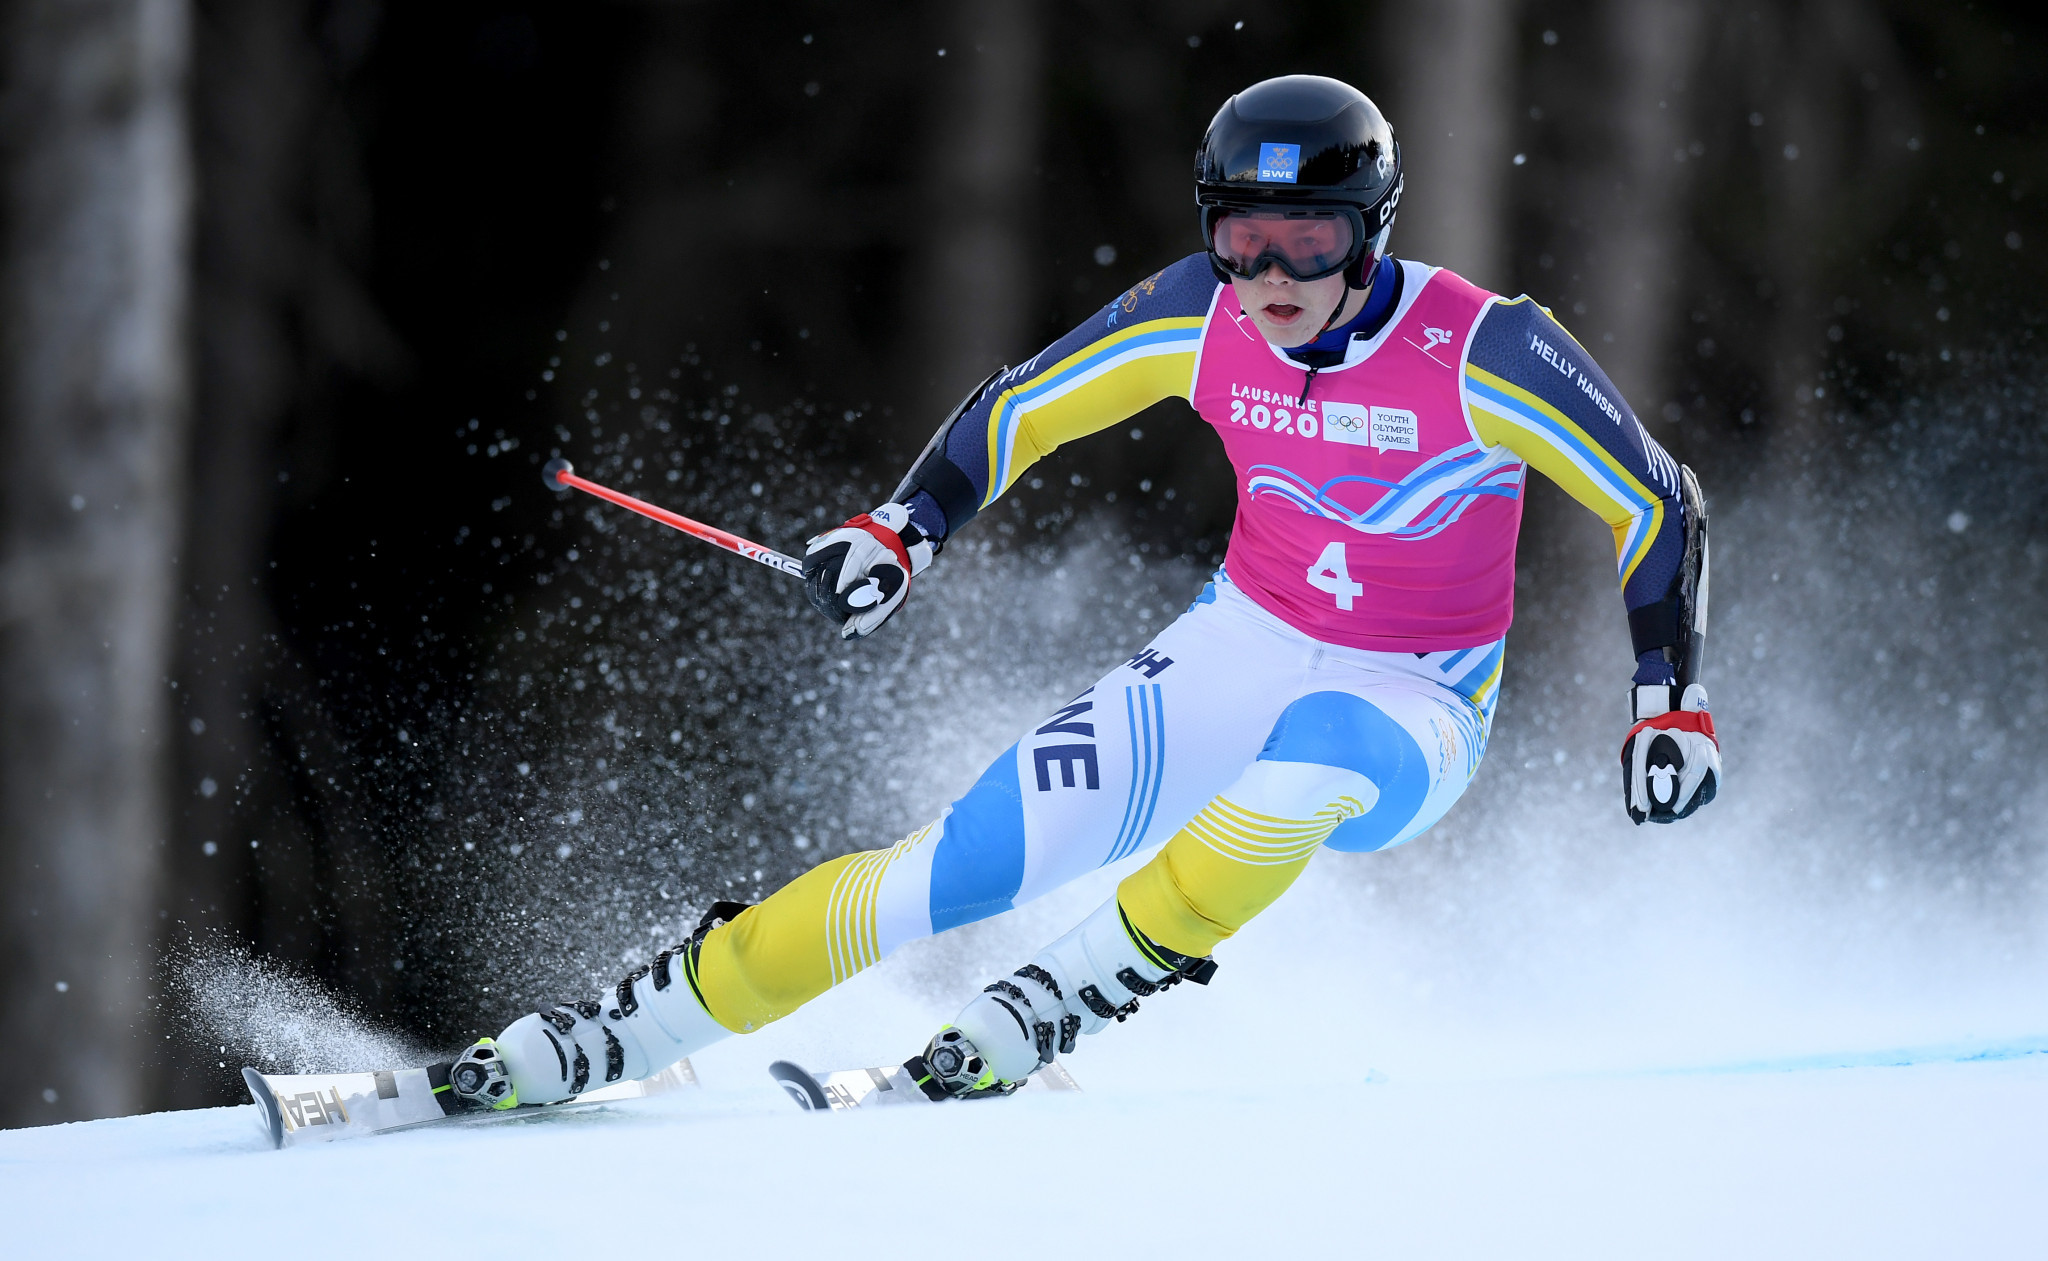 Swedish slalom skiers secure double gold at Lausanne 2020